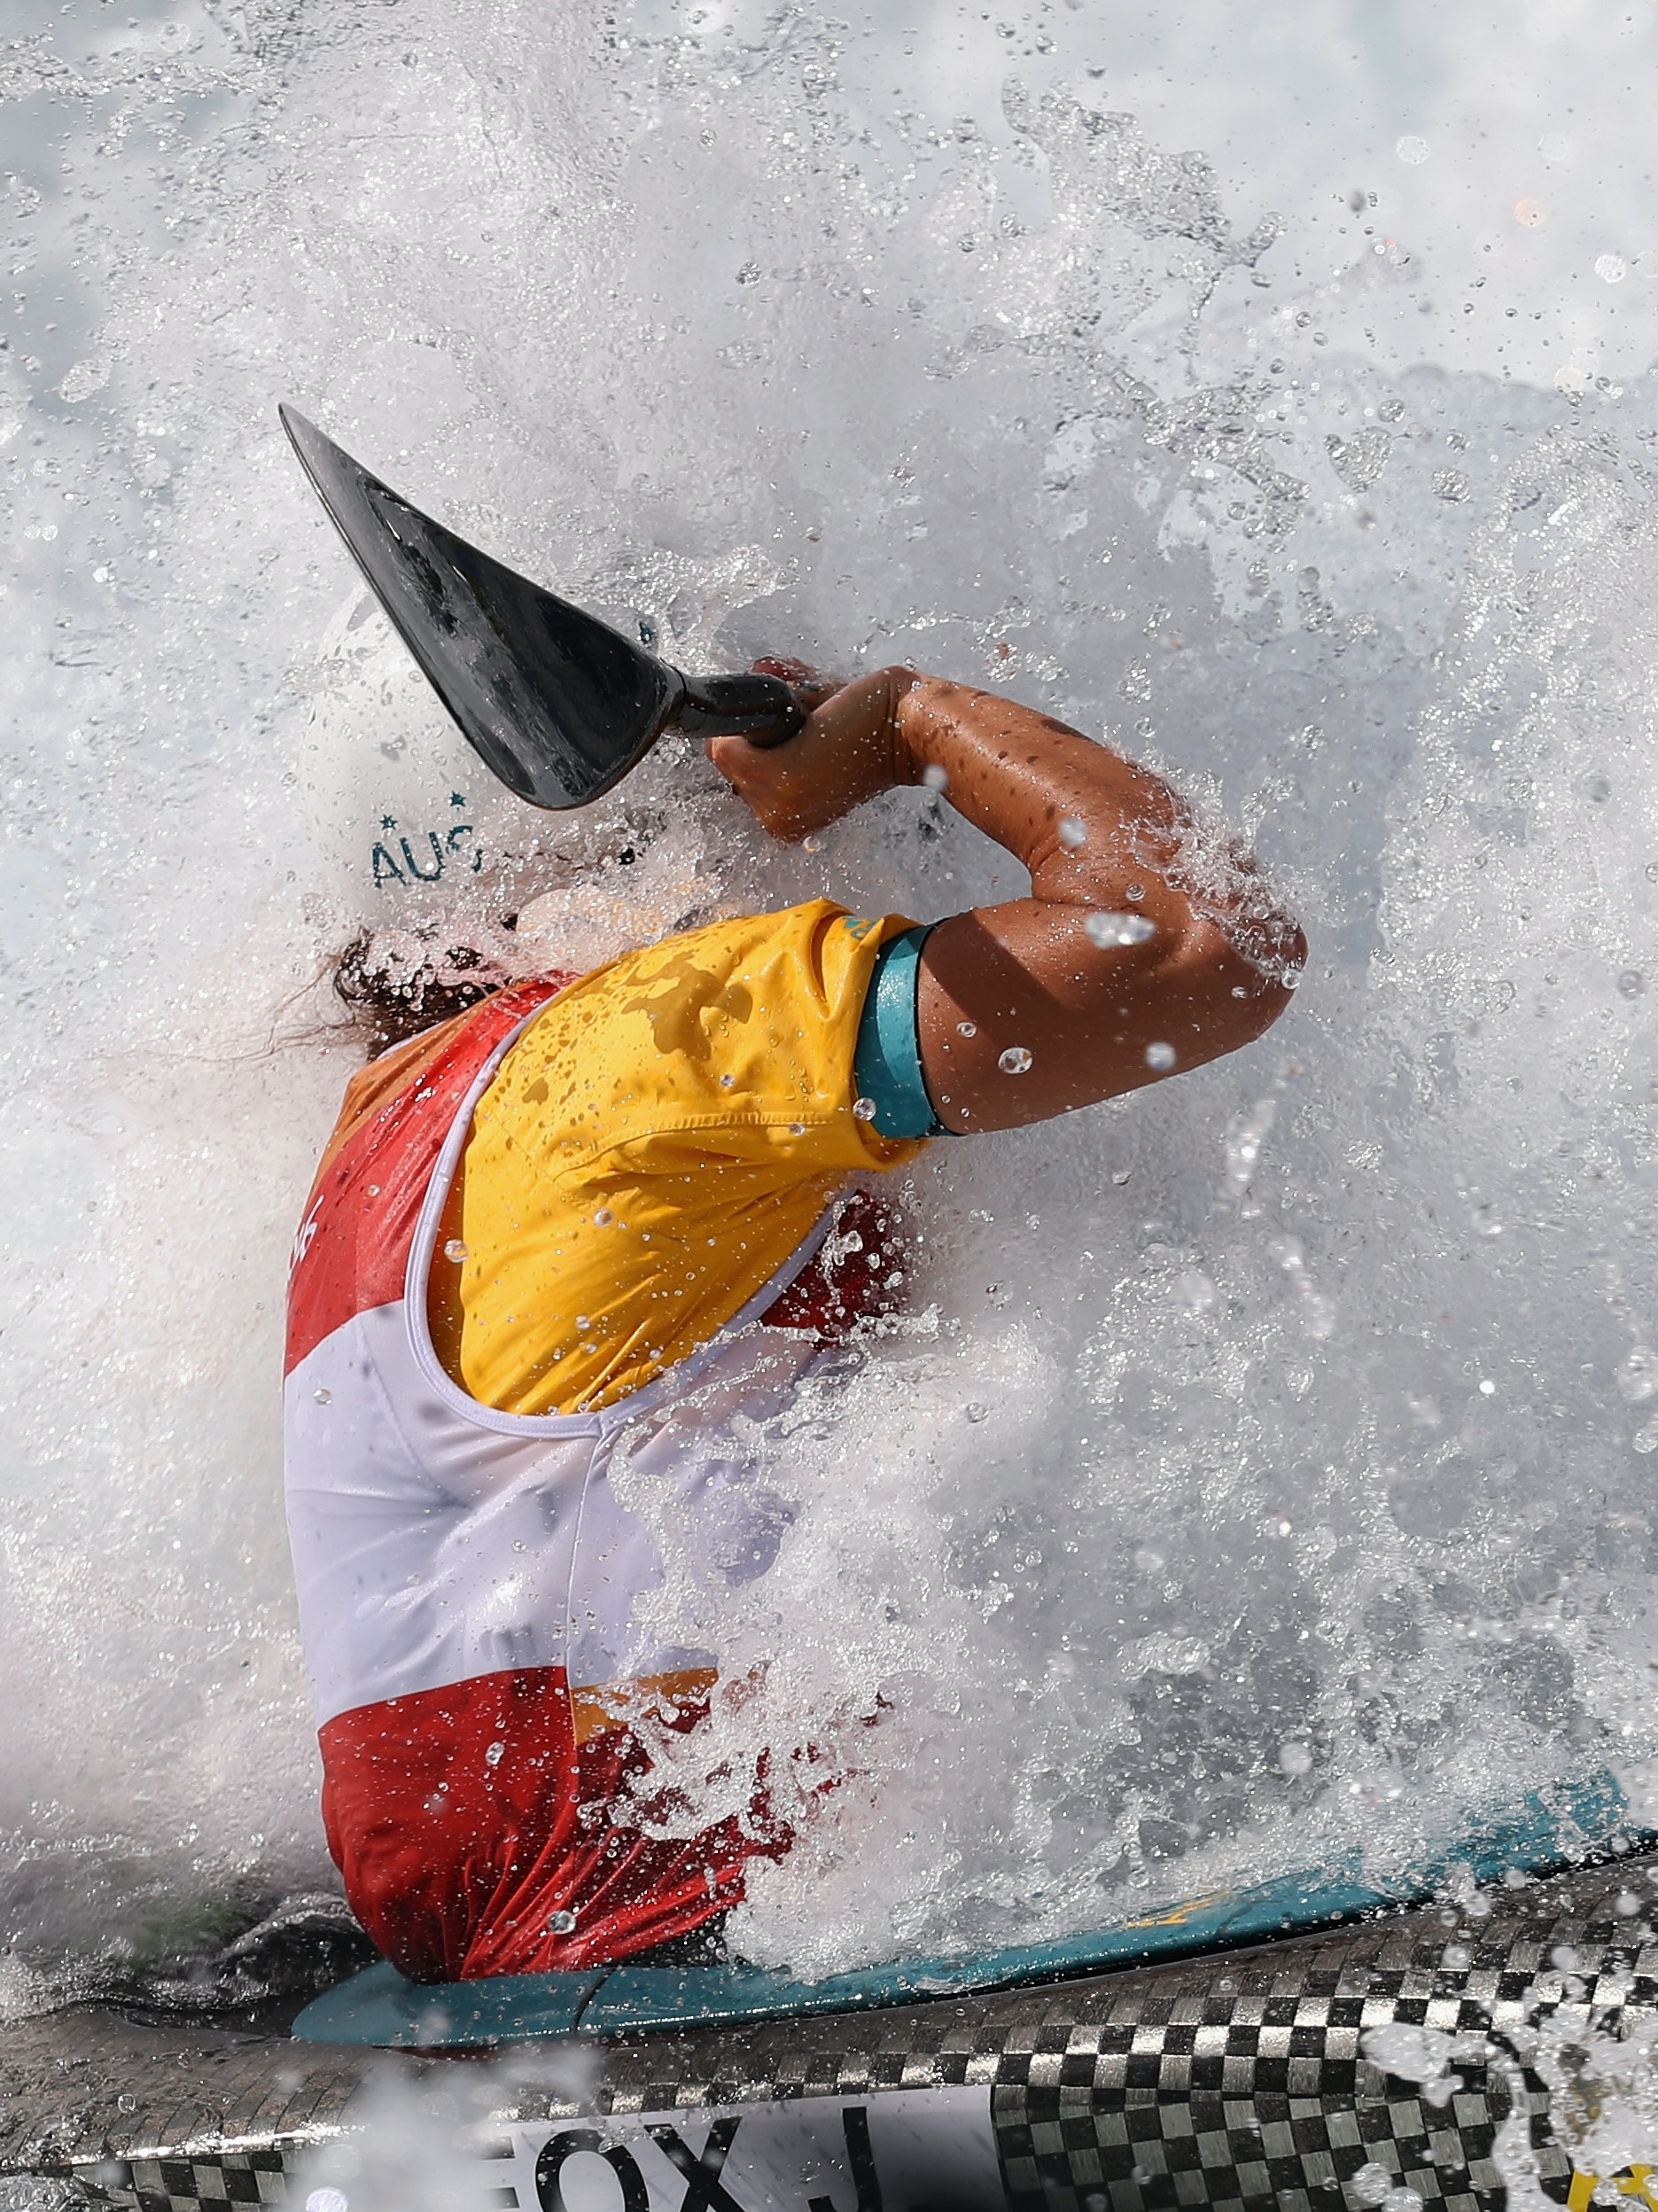 RIO DE JANEIRO, BRAZIL - AUGUST 11:  Jessica Fox of Australia competes during the Women's Kayak (K1) Semi-final on Day 6 of the Rio 2016 Olympics at Whitewater Stadium on August 11, 2016 in Rio de Janeiro, Brazil.  (Photo by Rob Carr/Getty Images)